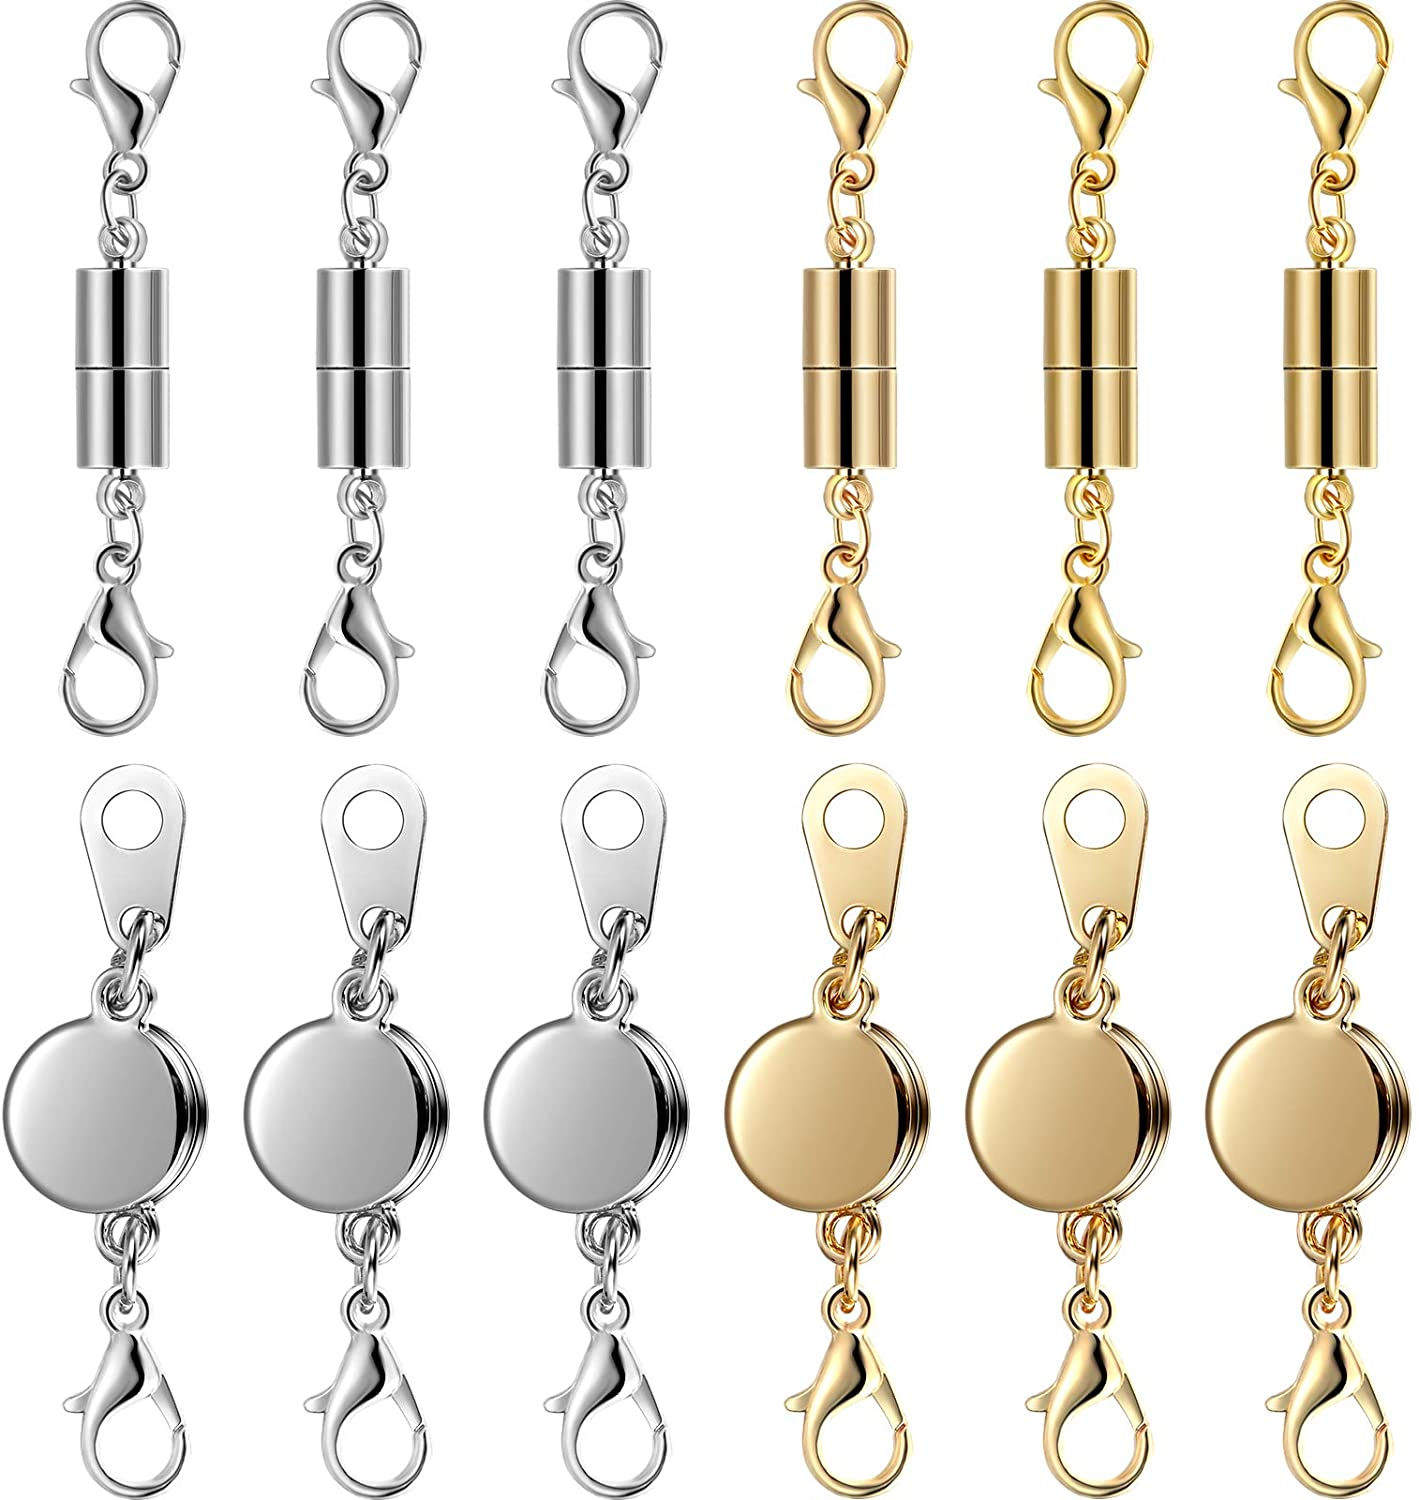 4 Magnetic Fasteners 6 X 18 mm Silver cylinder chain closure Connectors Connector Jewelry clasp Magnet Clasp Bracelet